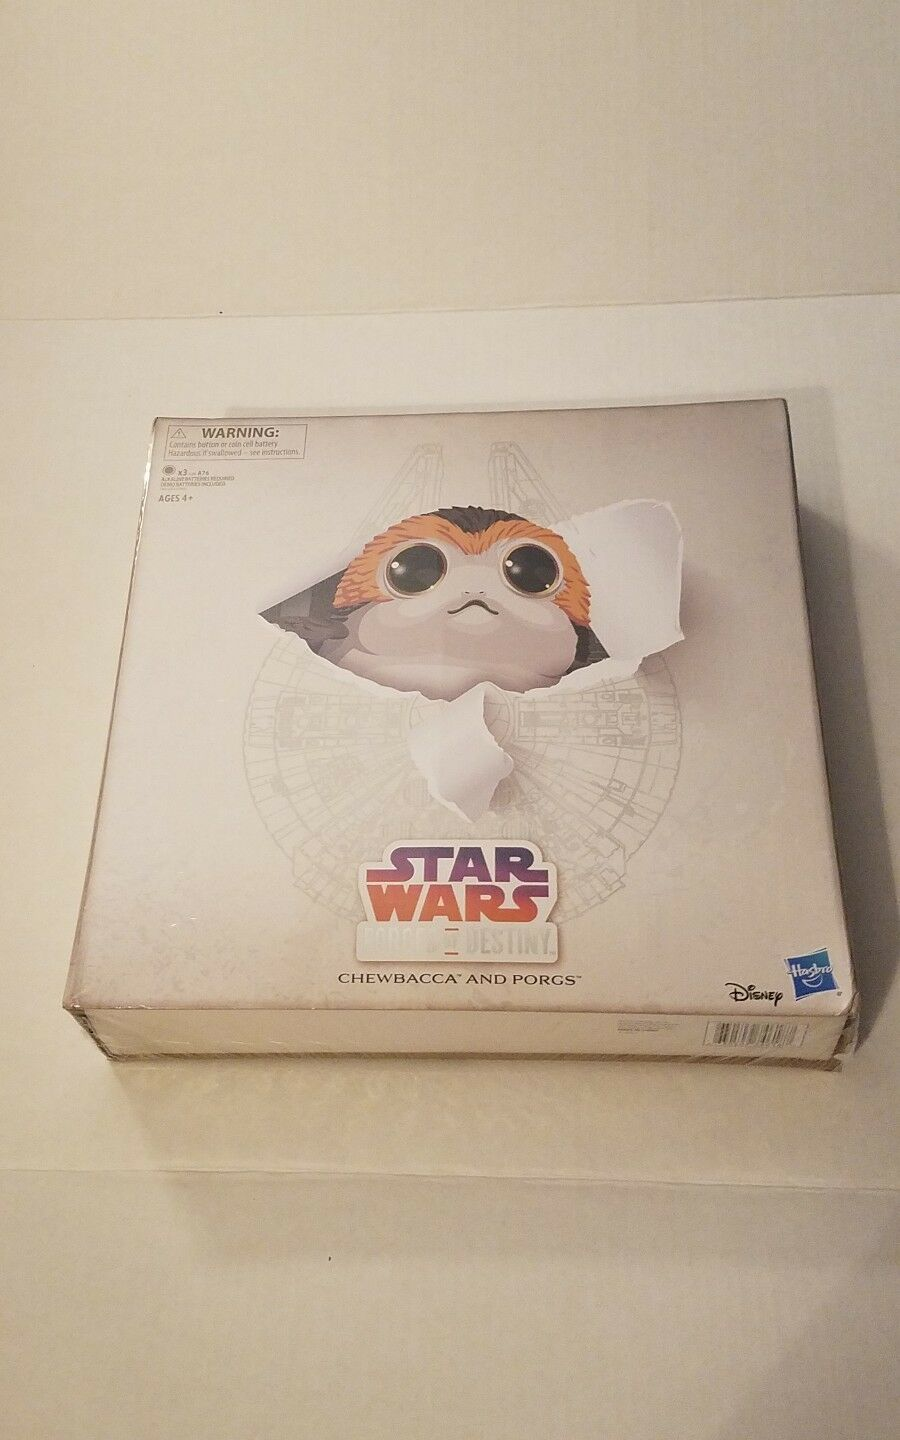 2018 SDCC EXCLUSIVE HASBRO STAR WARS FORCE OF DESTINY CHEWBACCA W/ PORG FAMILY